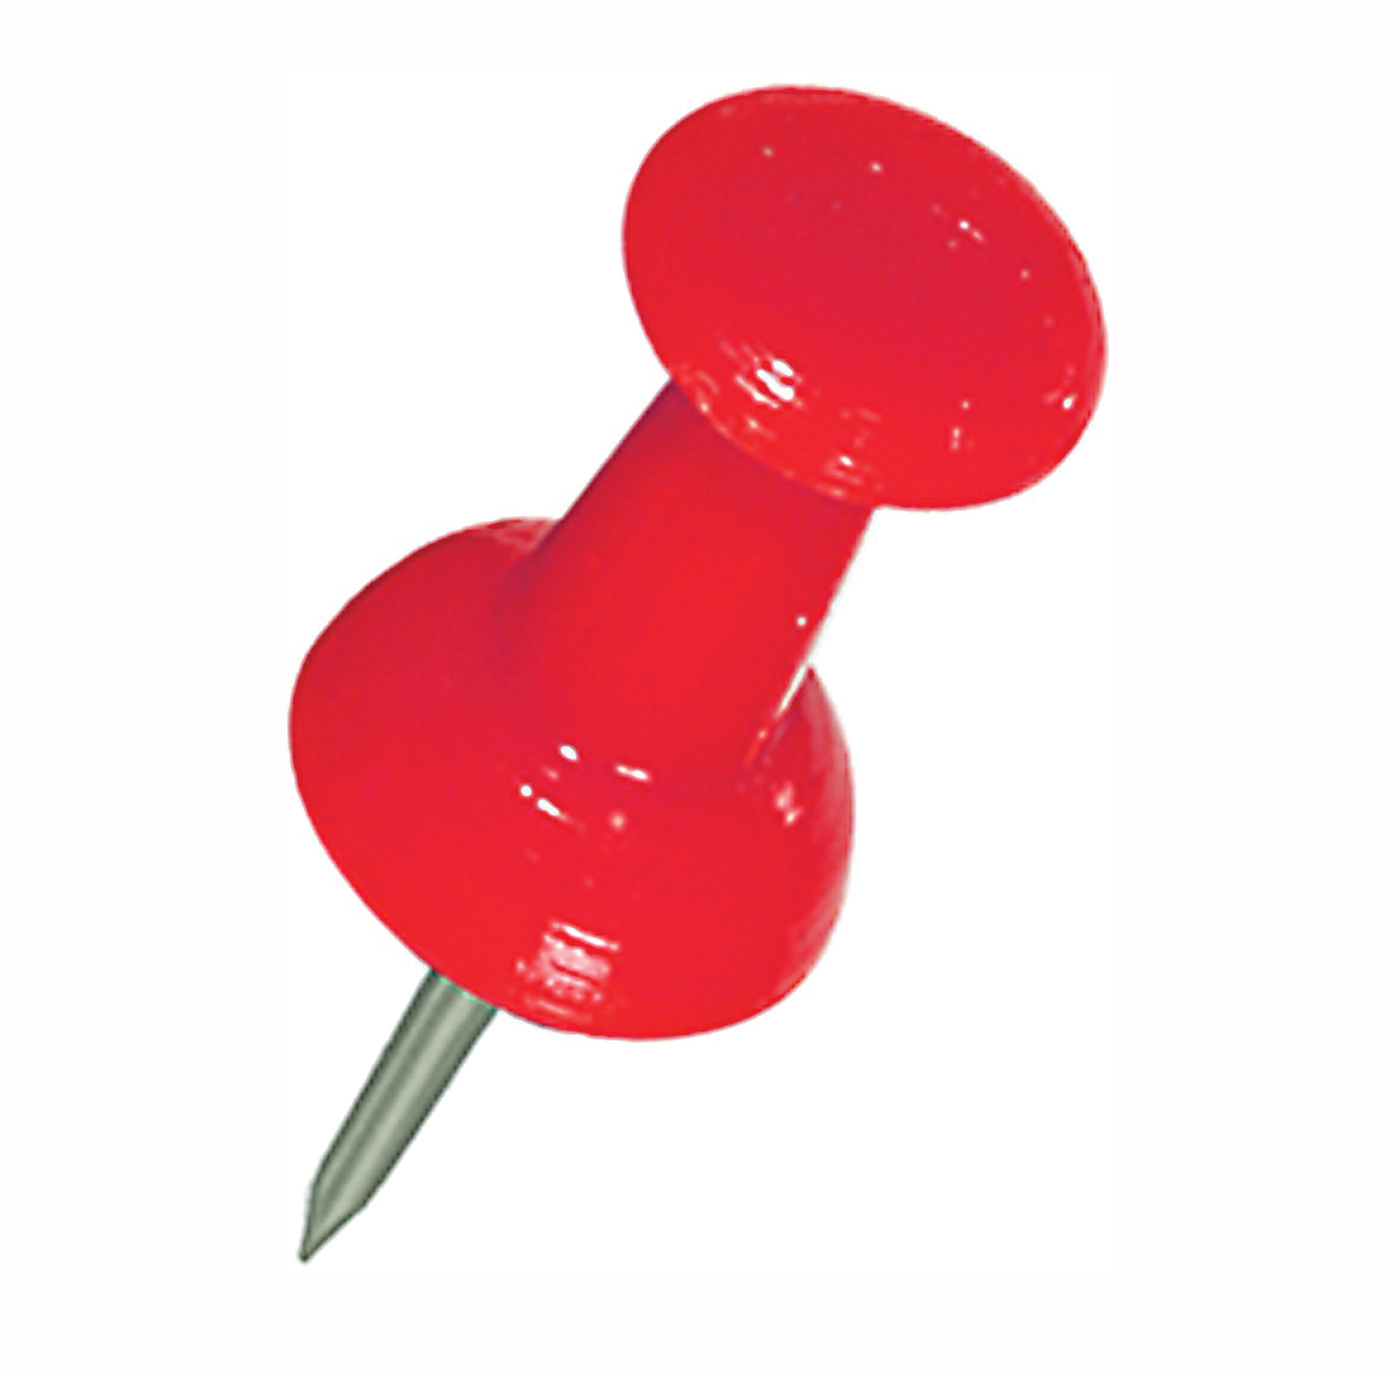 Picture of HILLMAN 122642 Push Pin, 5 in L, Plastic, Red